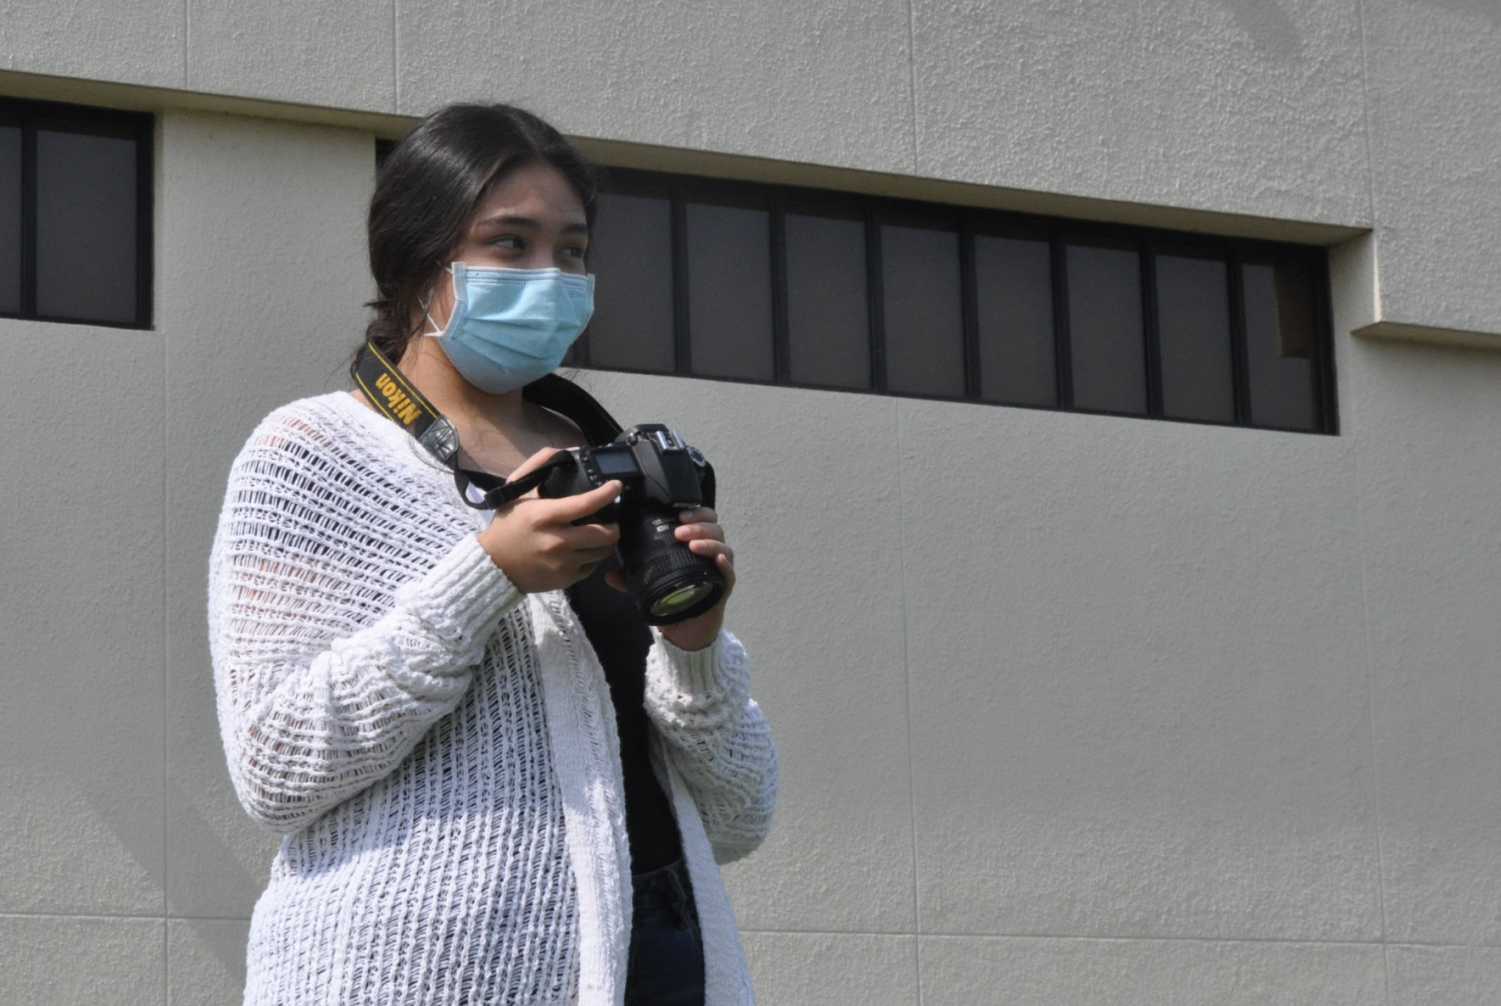 Junior Montserrat Barbosa learns how to take photos with varying angles during 3rd period, Sept. 17.